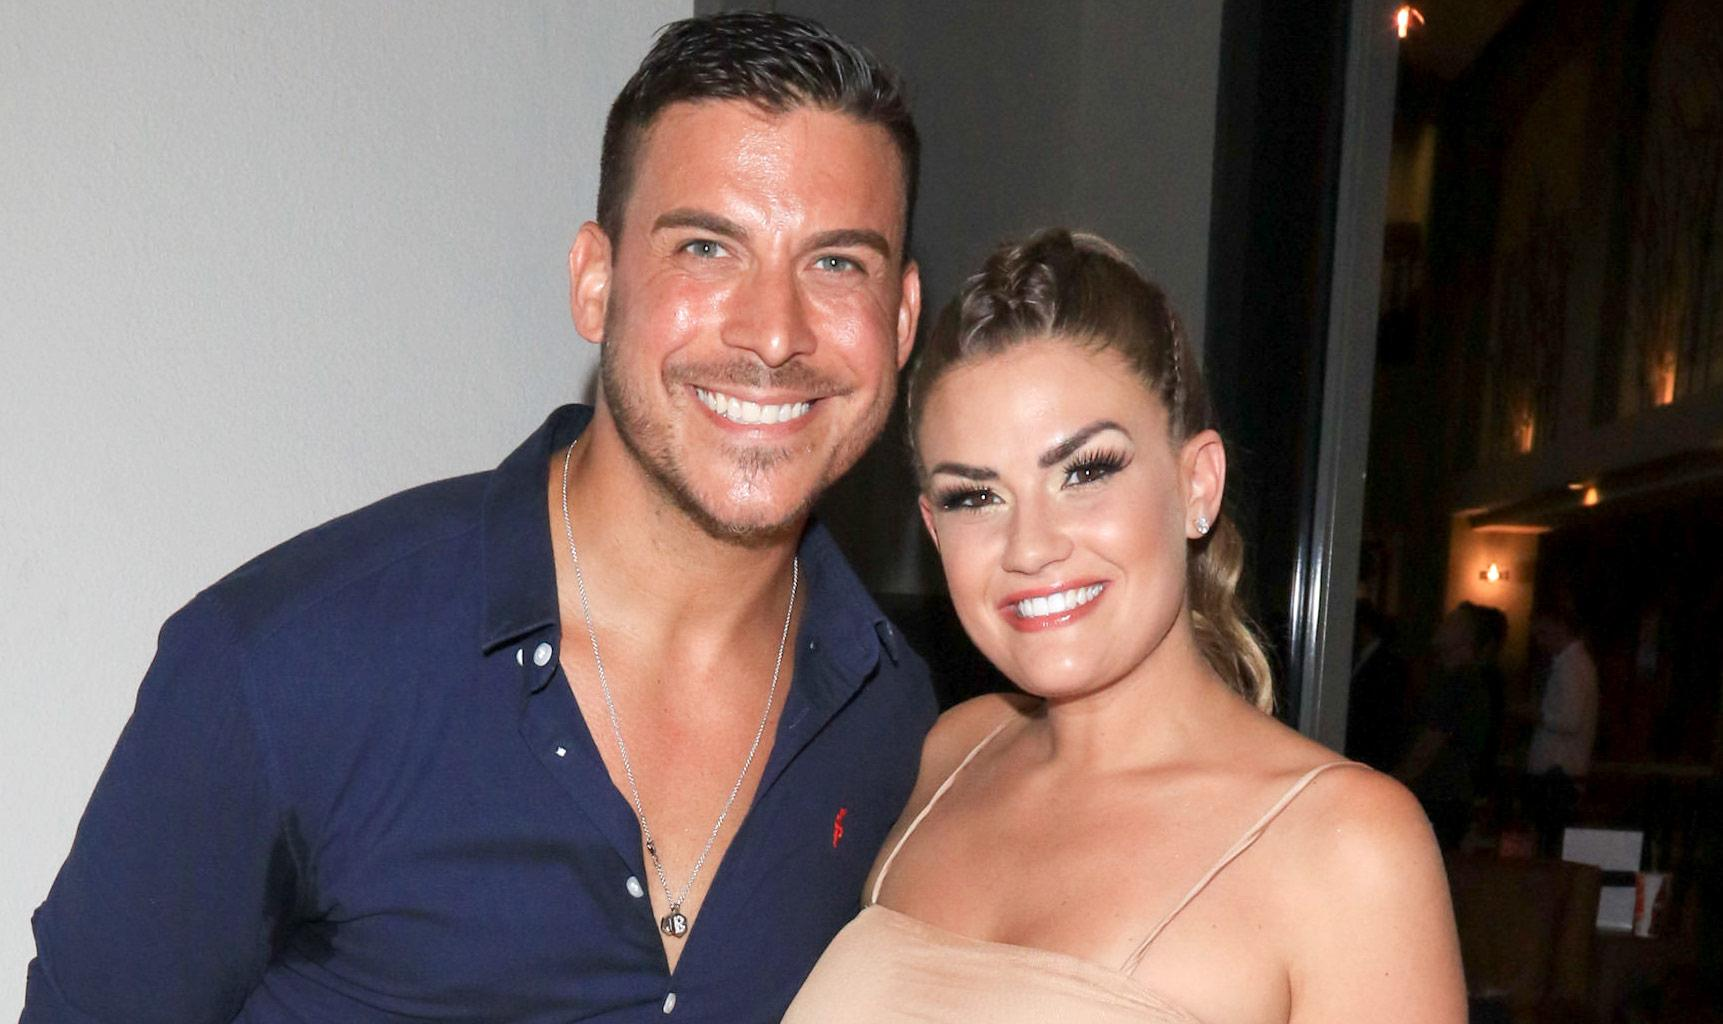 Jax Taylor And Brittany Cartwright - Inside Their New Show Plans After 'Vanderpump Rules' Exit!